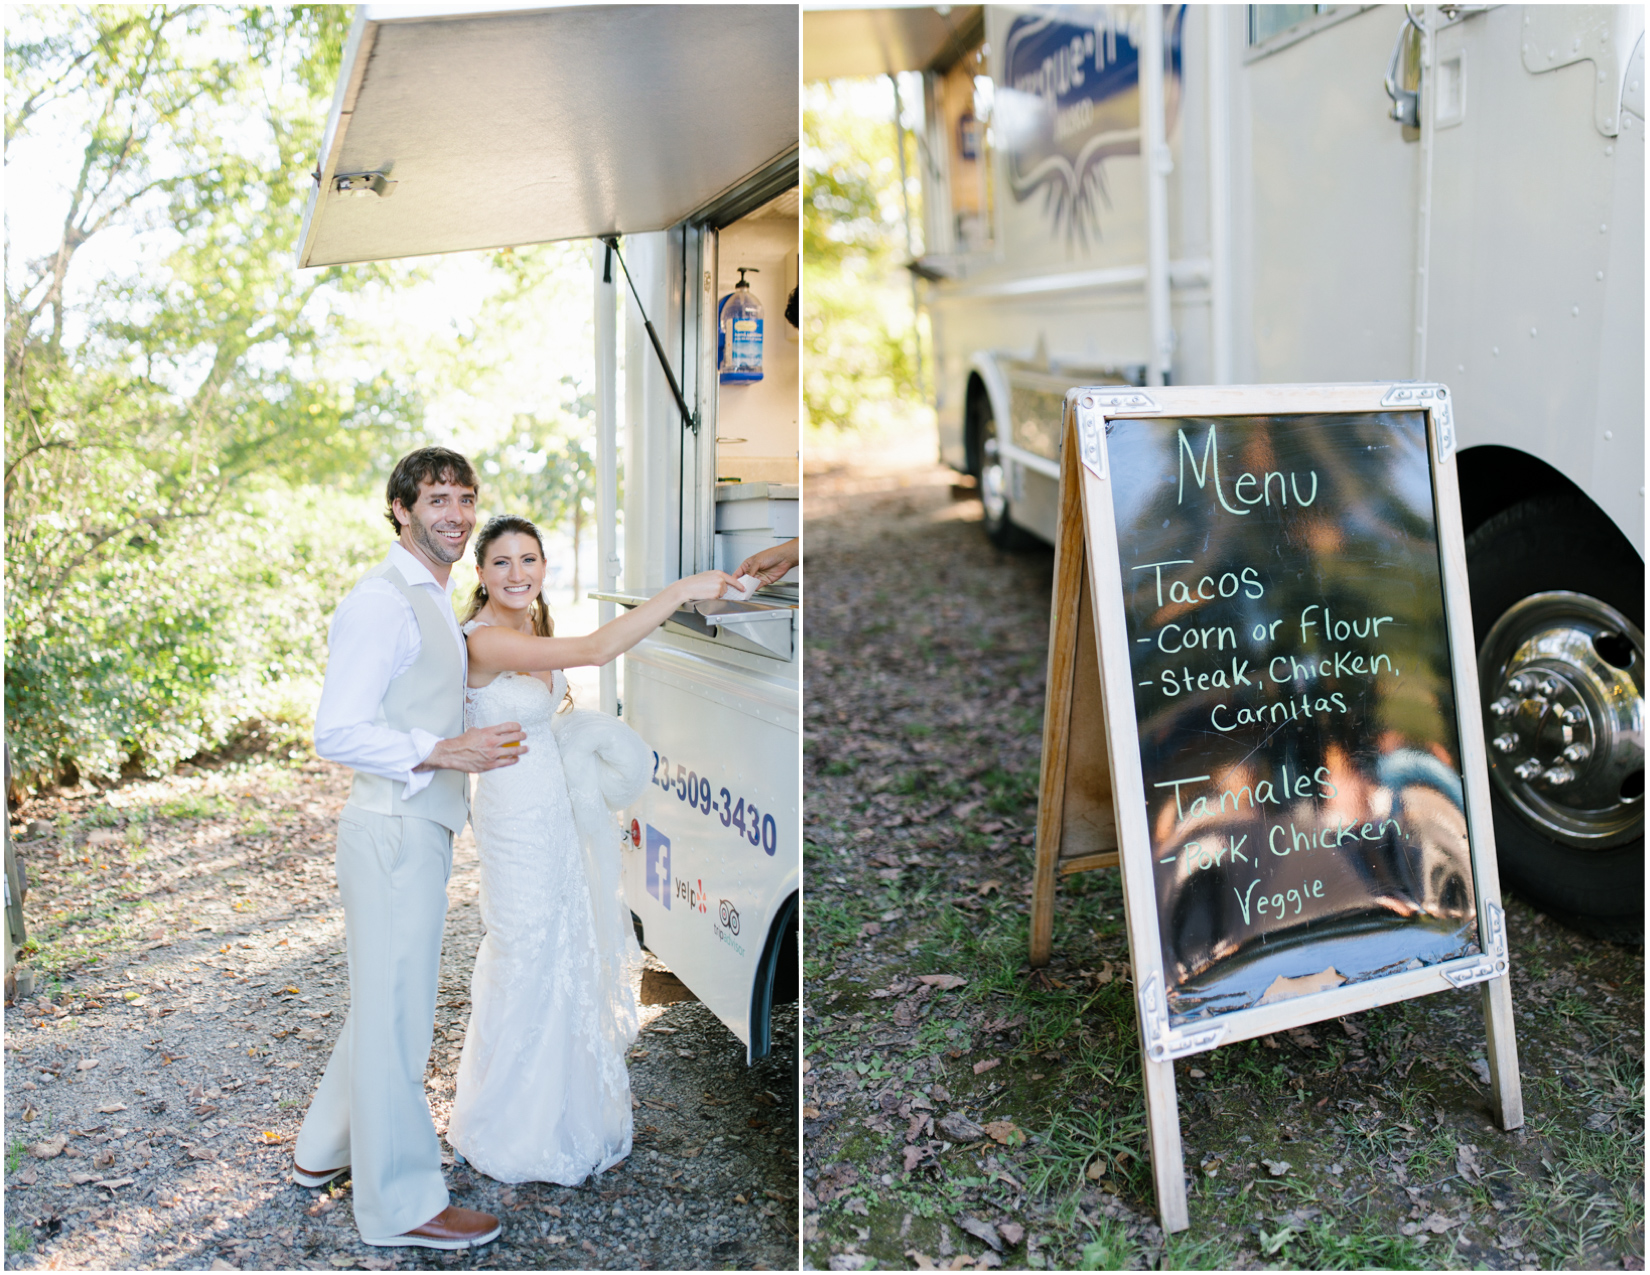 Tennessee River Place Wedding | Chattanooga, TN Wedding | Beautiful Wedding Details | Taco Truck on Wedding Day | Southern Bride | VSCO | Emma Rose Company.jpg